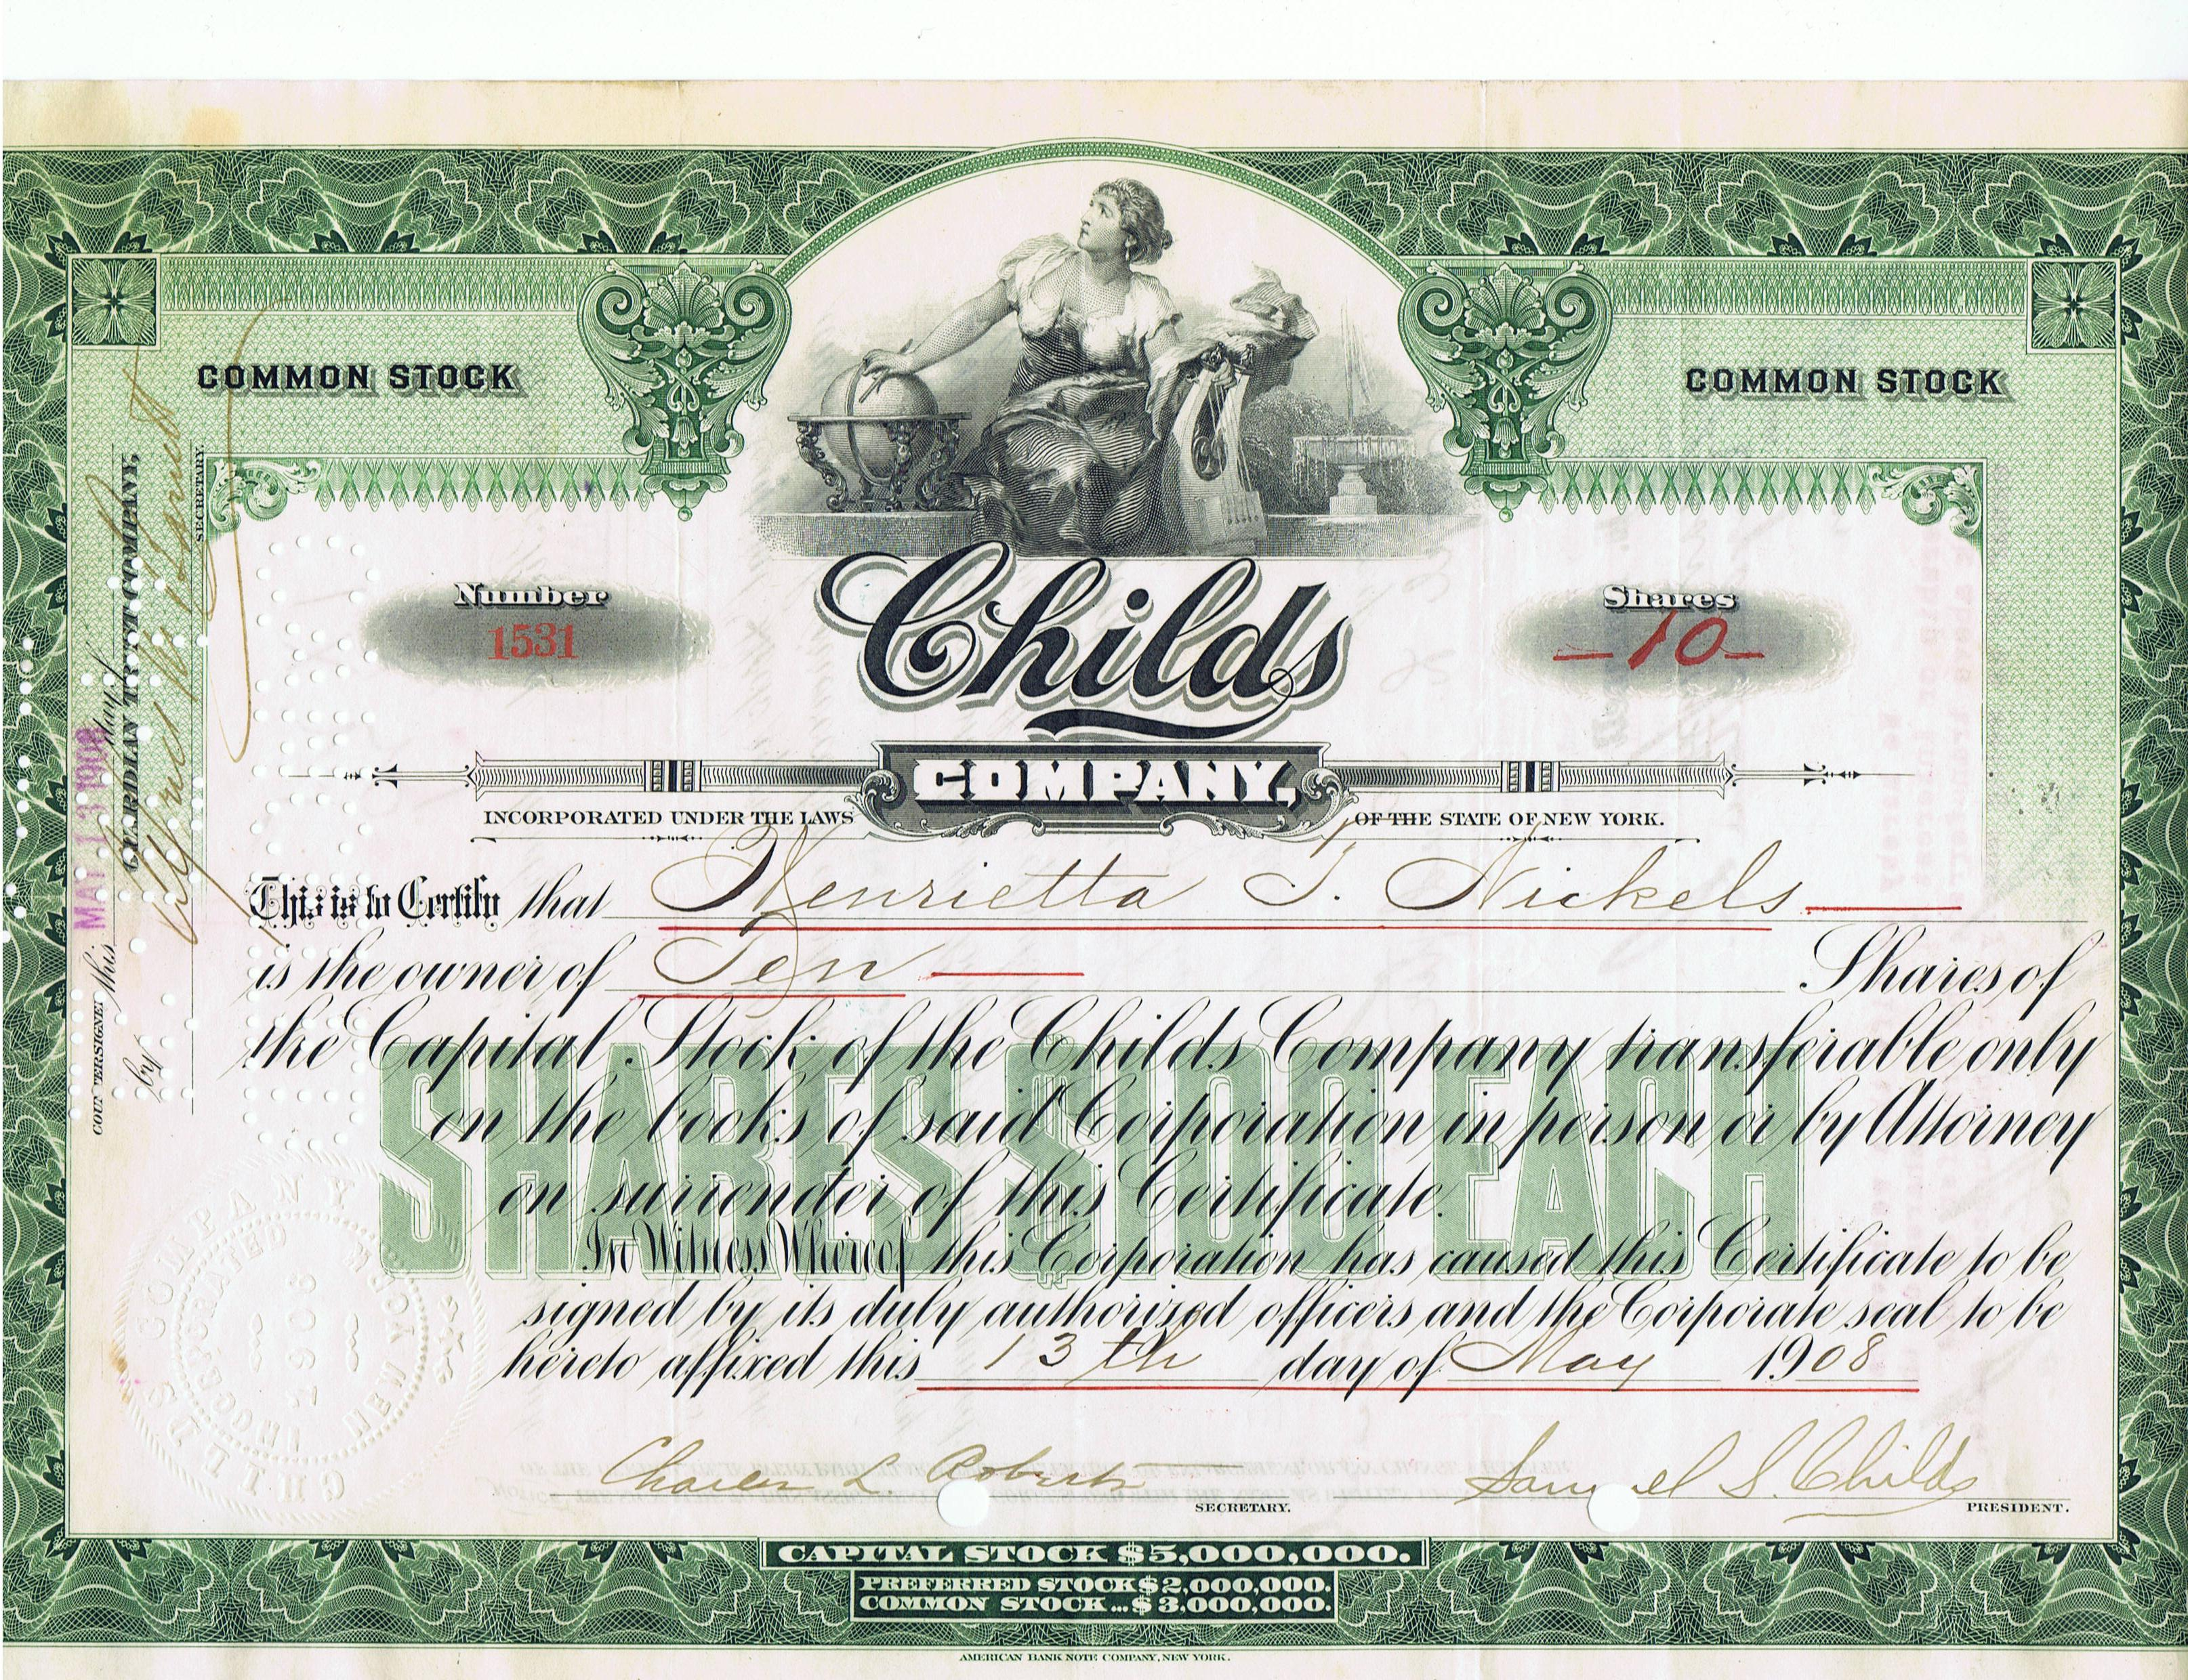 File Childs Company Stock Certificate 1908 Jpg Wikipedia